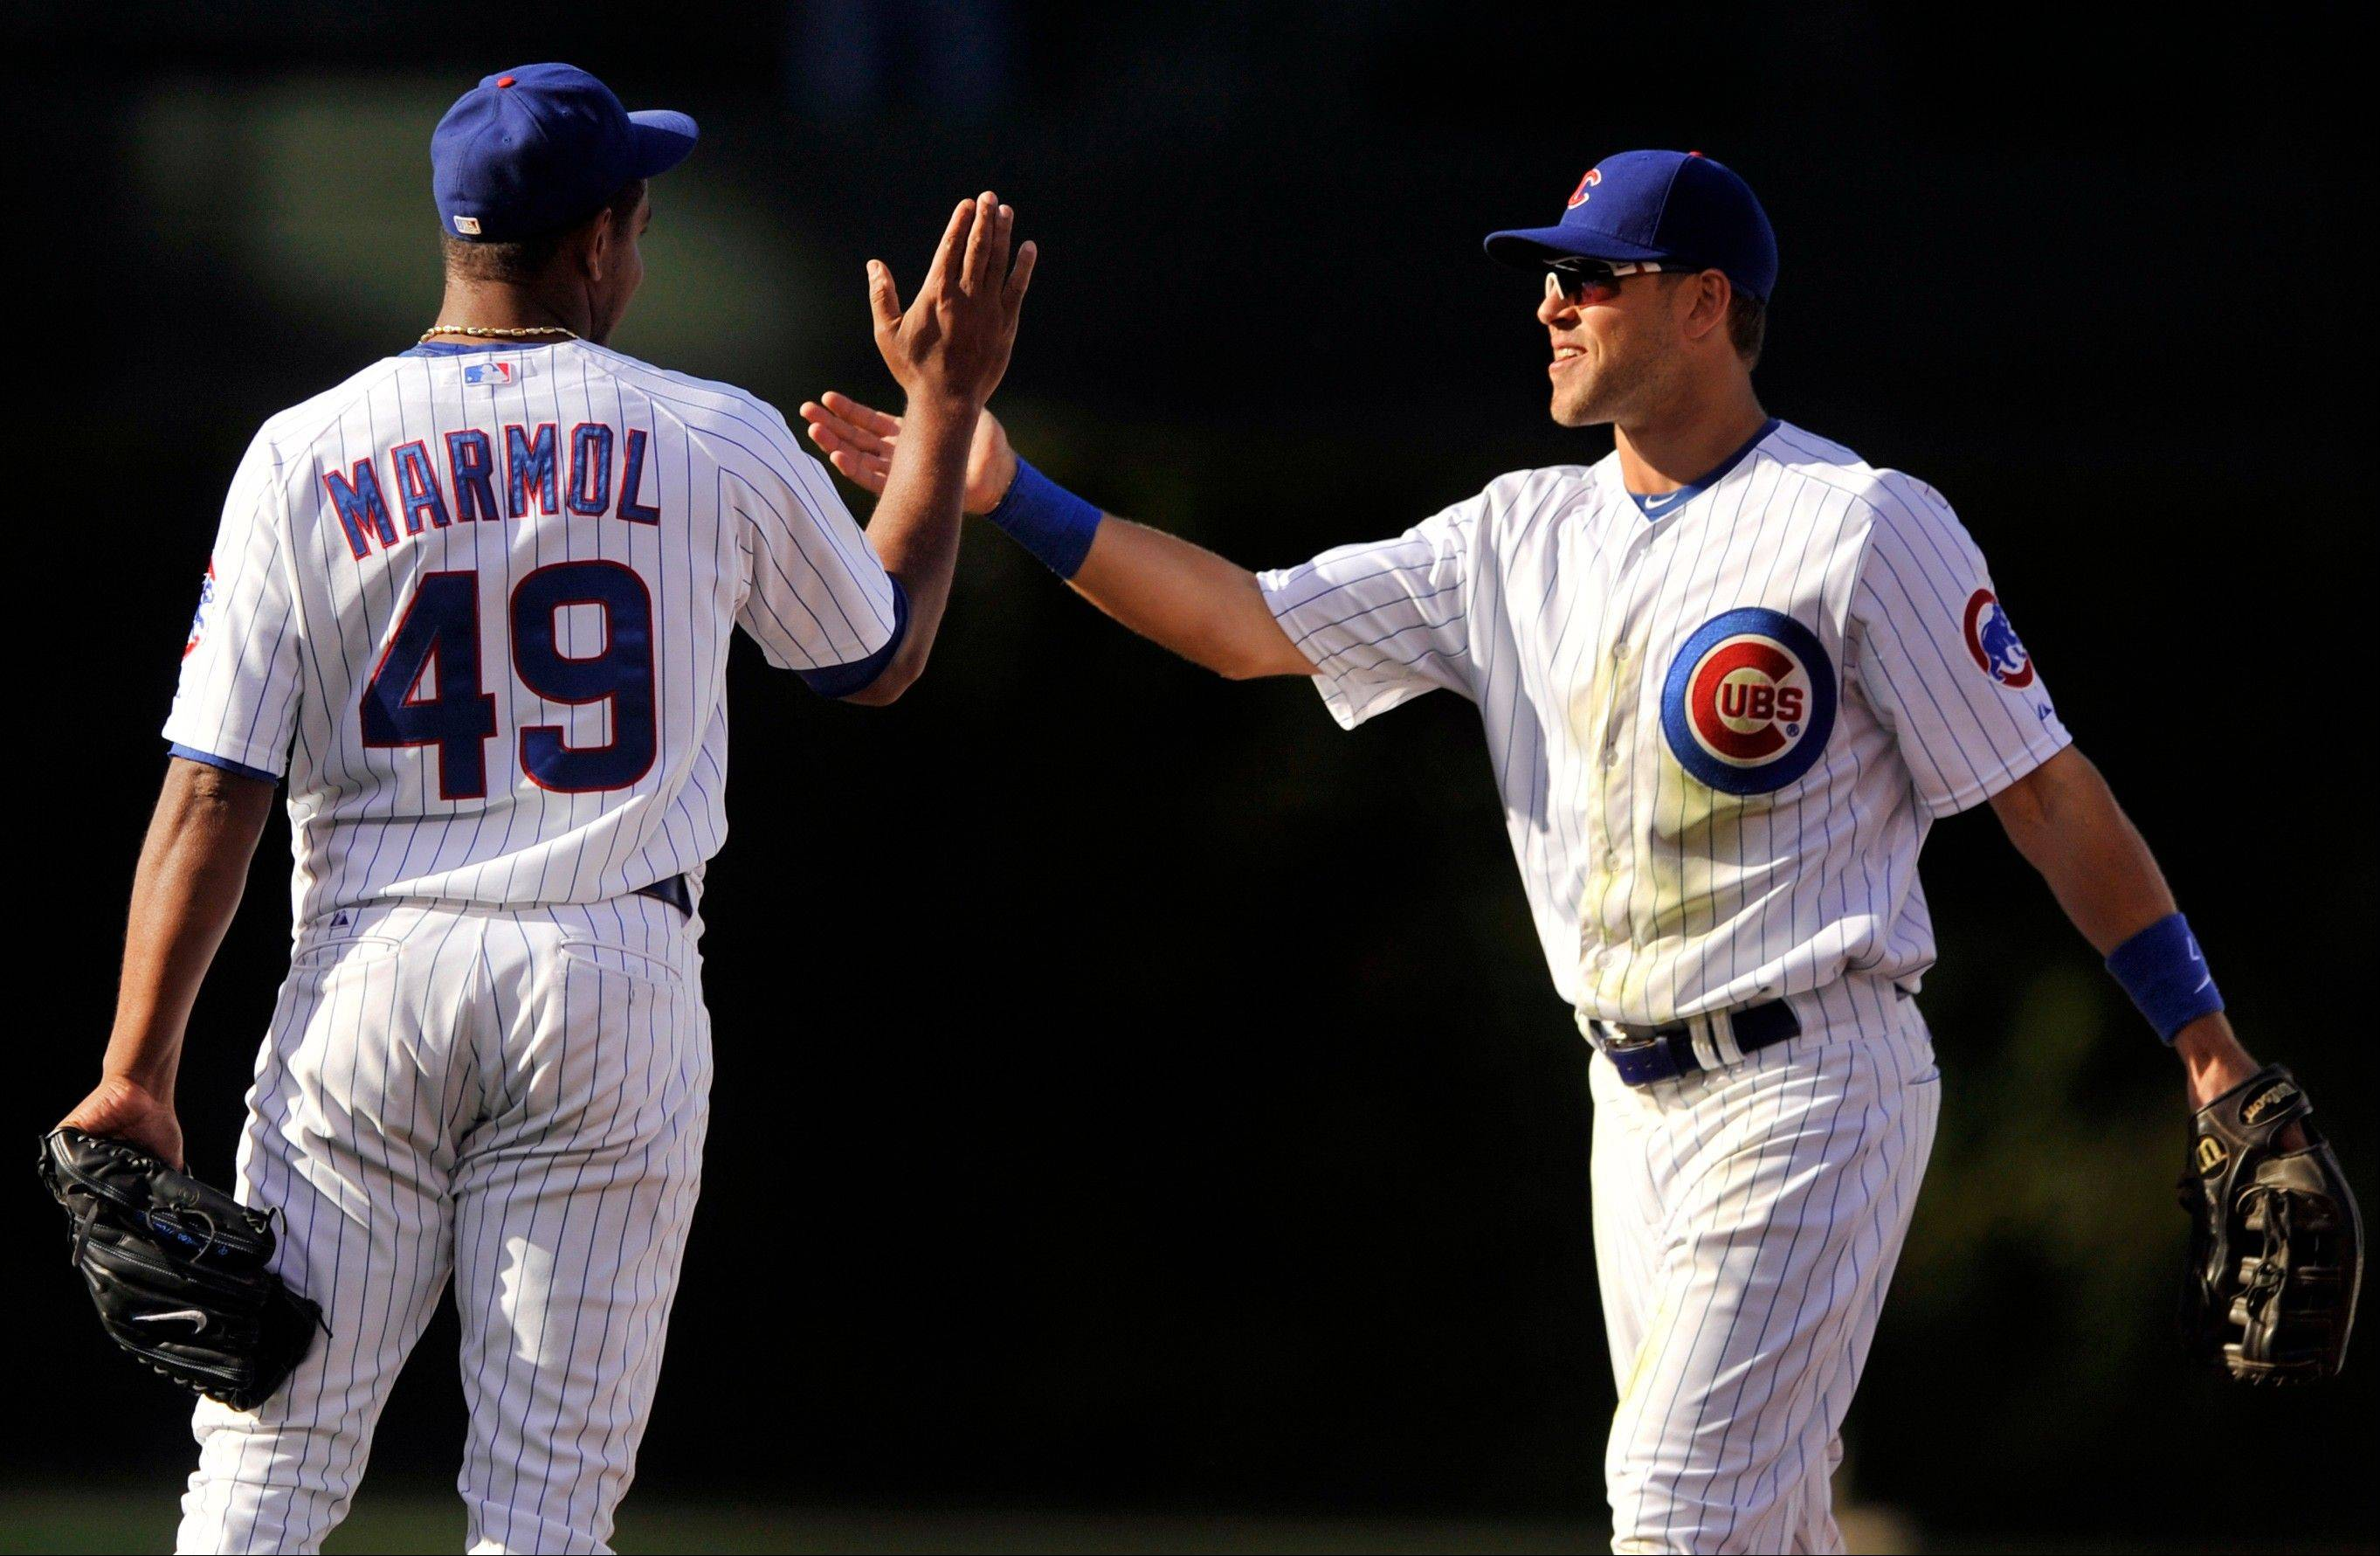 Brett Jackson, right, celebrates with Cubs closer Carlos Marmol, who recorded his 19th straight save and 20th of the season Friday in a 7-4 win over the Pirates at Wrigley Field.